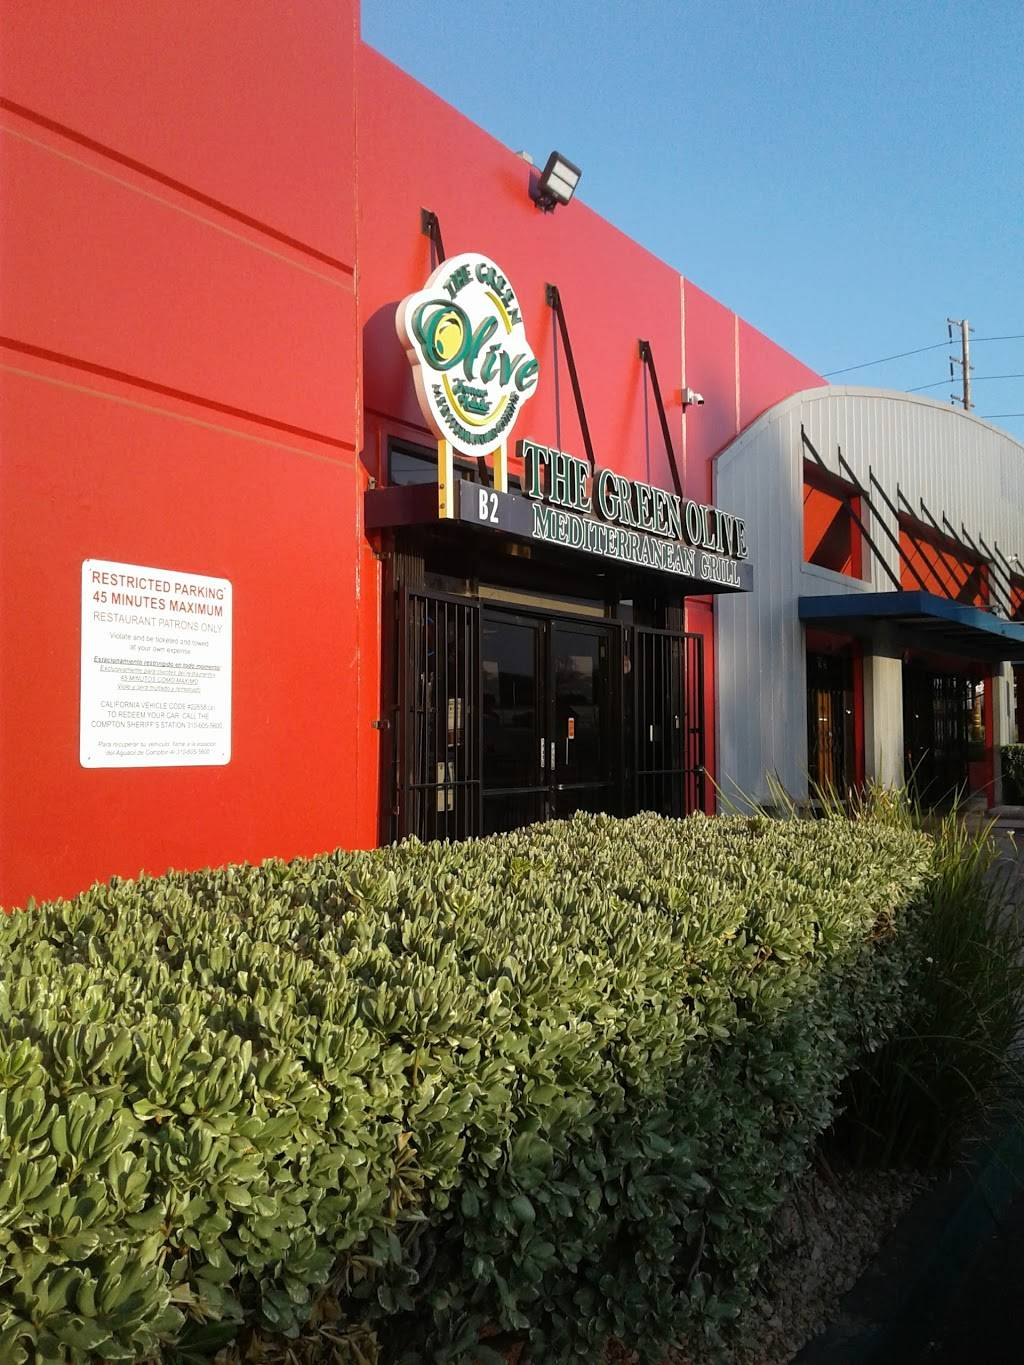 The Green Olive | restaurant | 855 W Victoria St, Compton, CA 90220, USA | 3106032203 OR +1 310-603-2203